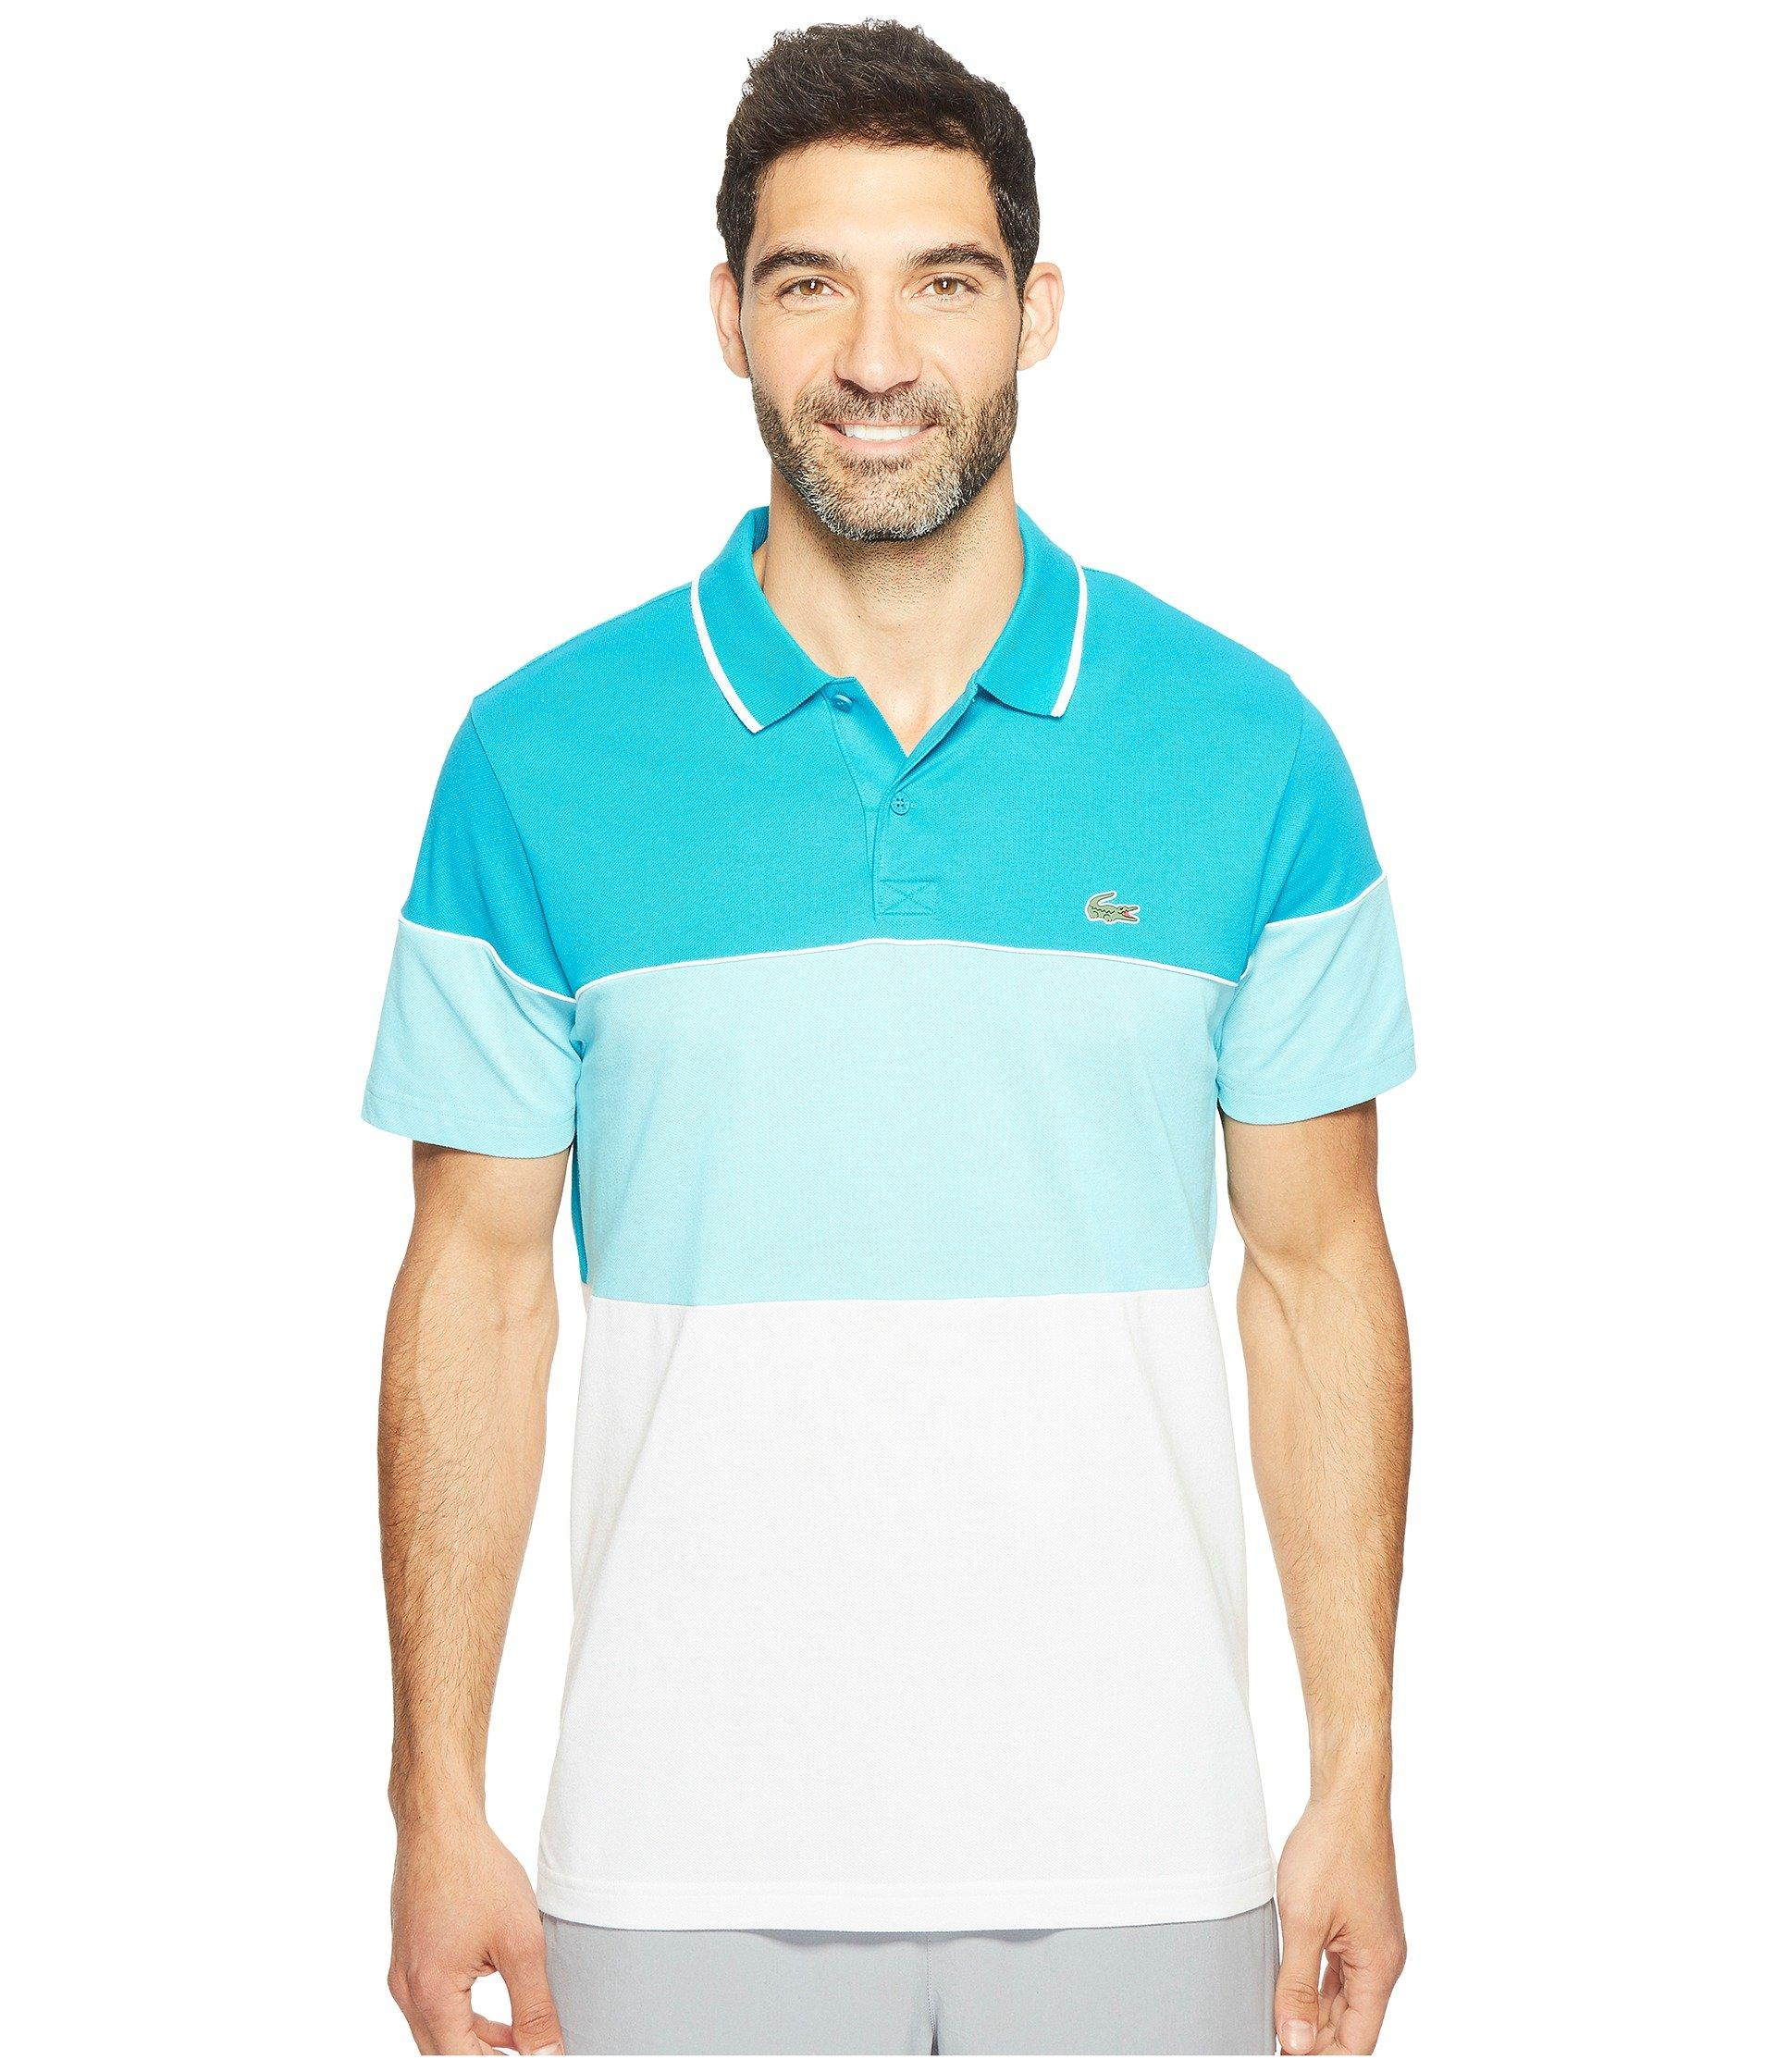 3c00ca48 Lyst - Lacoste Golf Color Block Stripe Ultra Dry Pique Knit in Blue ...